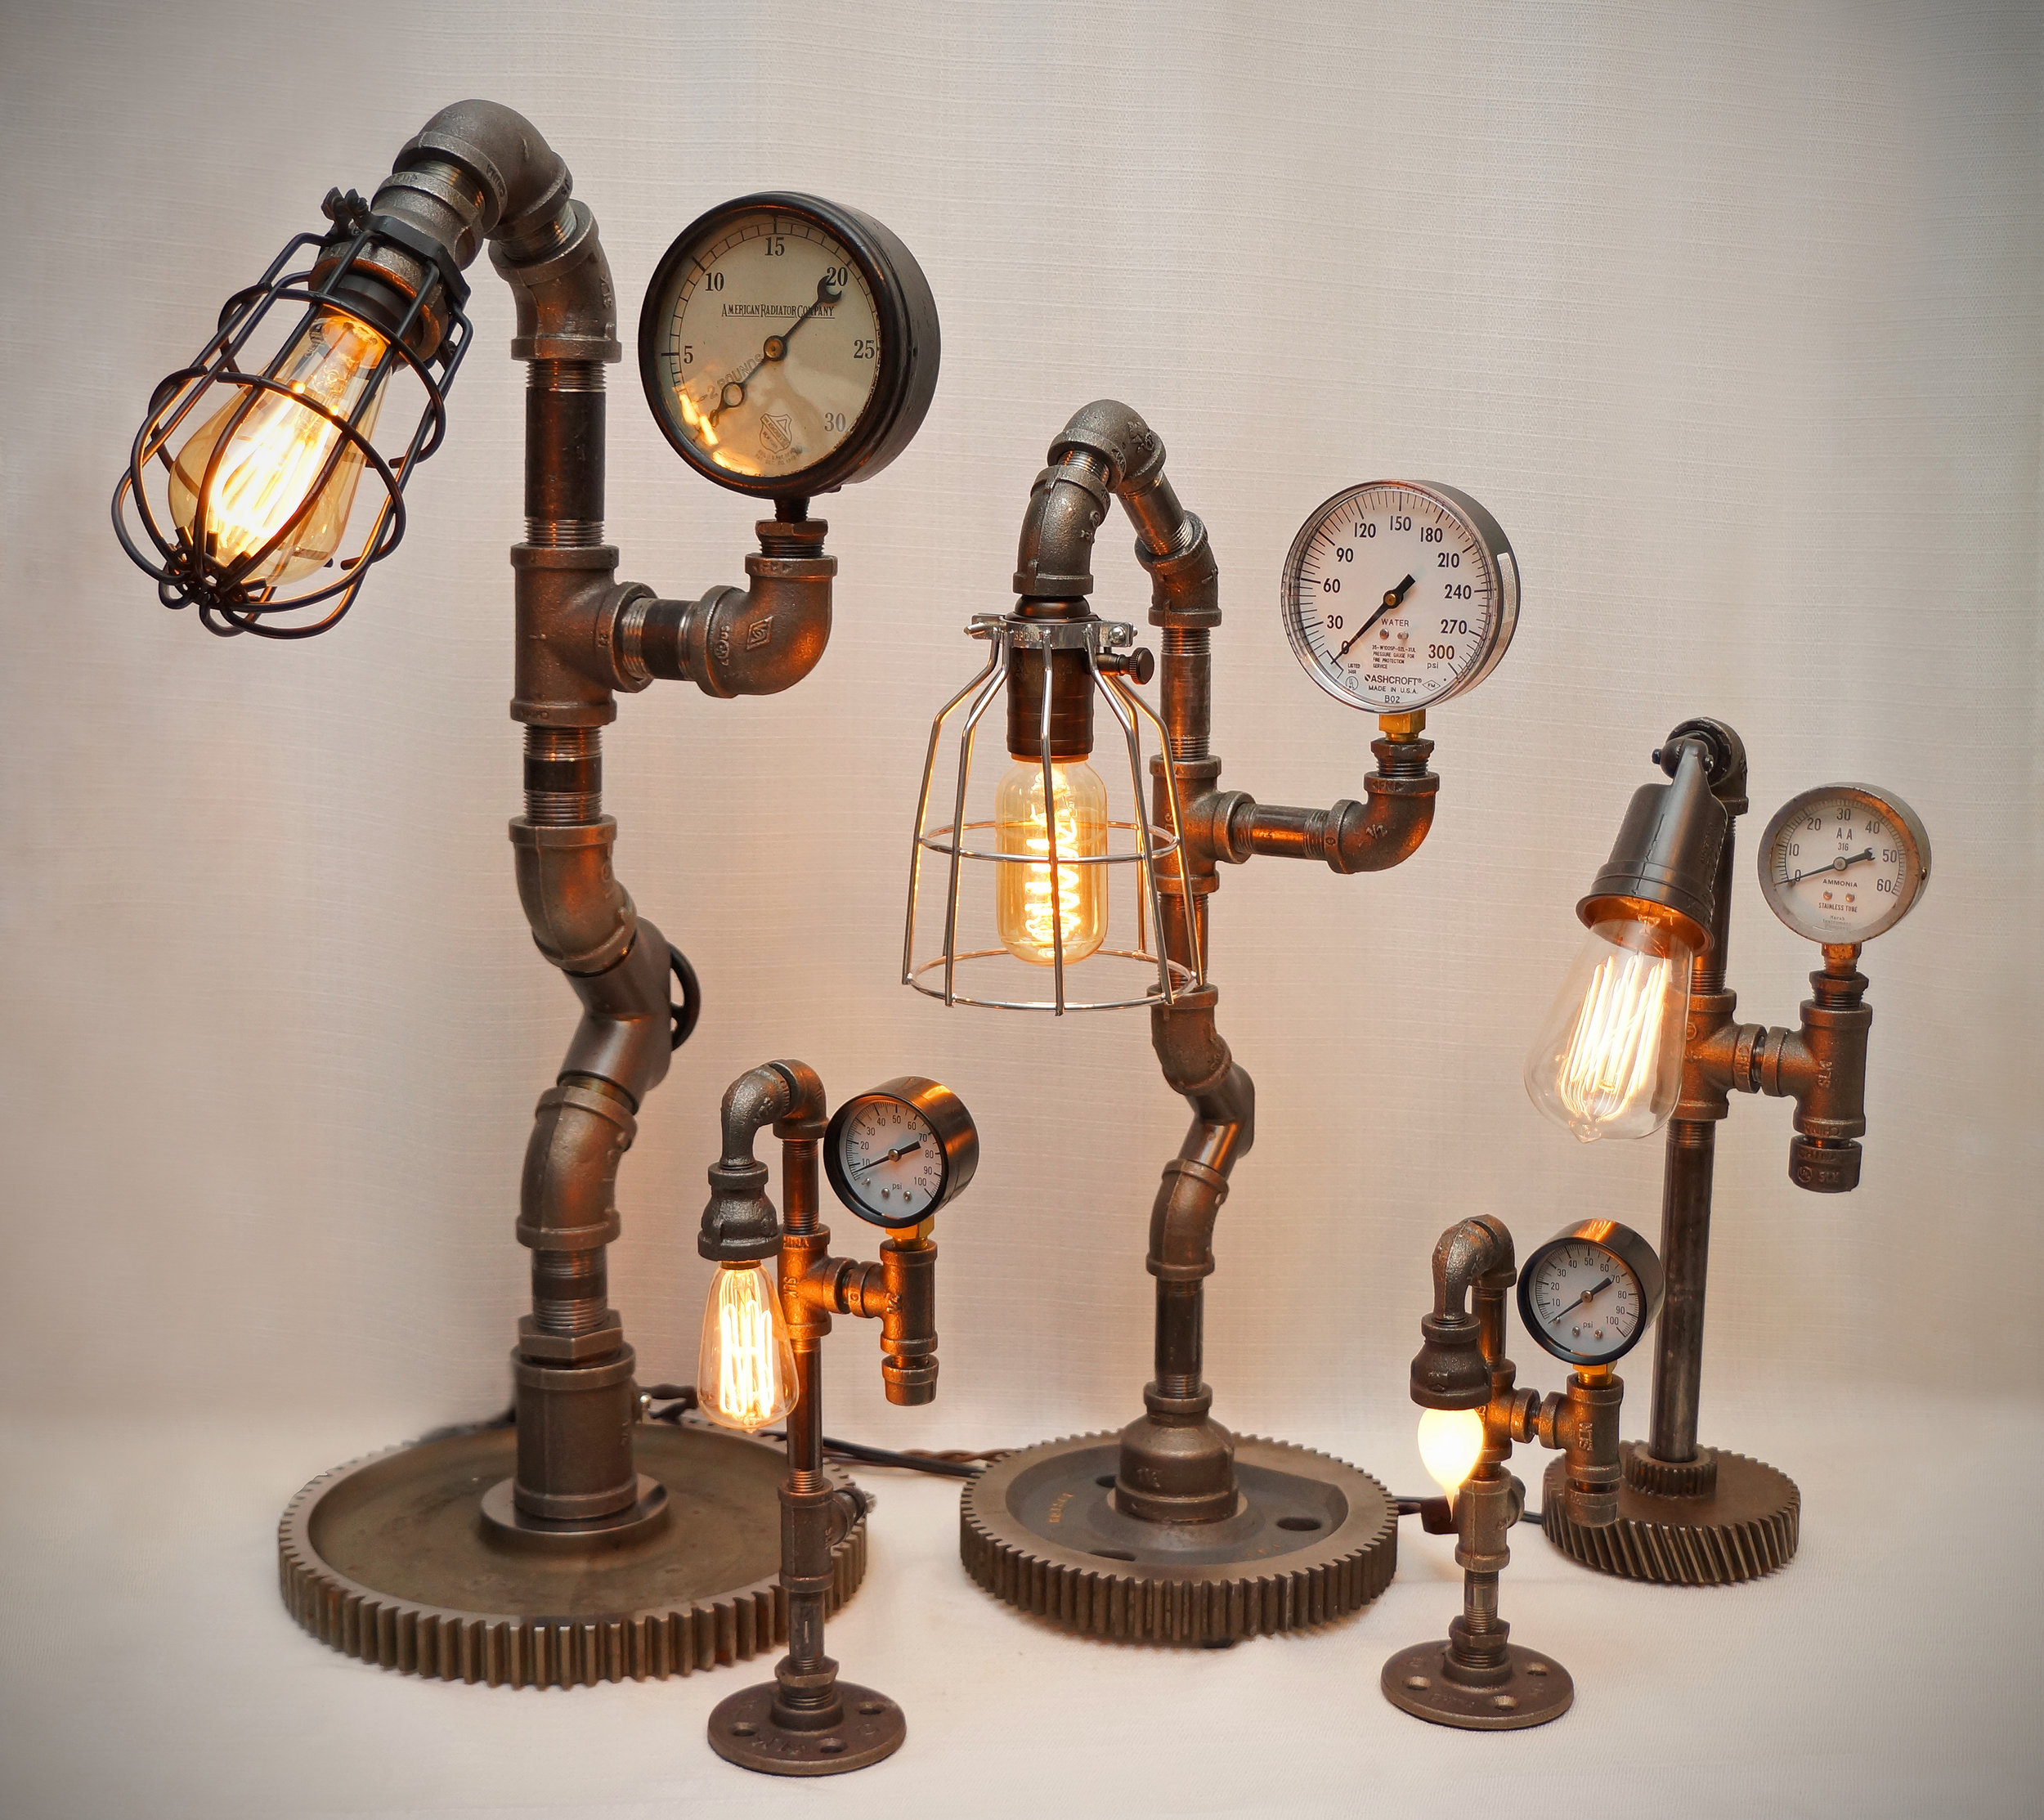 Steven Gallagher-    Steampunk and Industrial Pipe Lamps by Stephen Gallagher       @stevegallagherlamps  Roslindale House